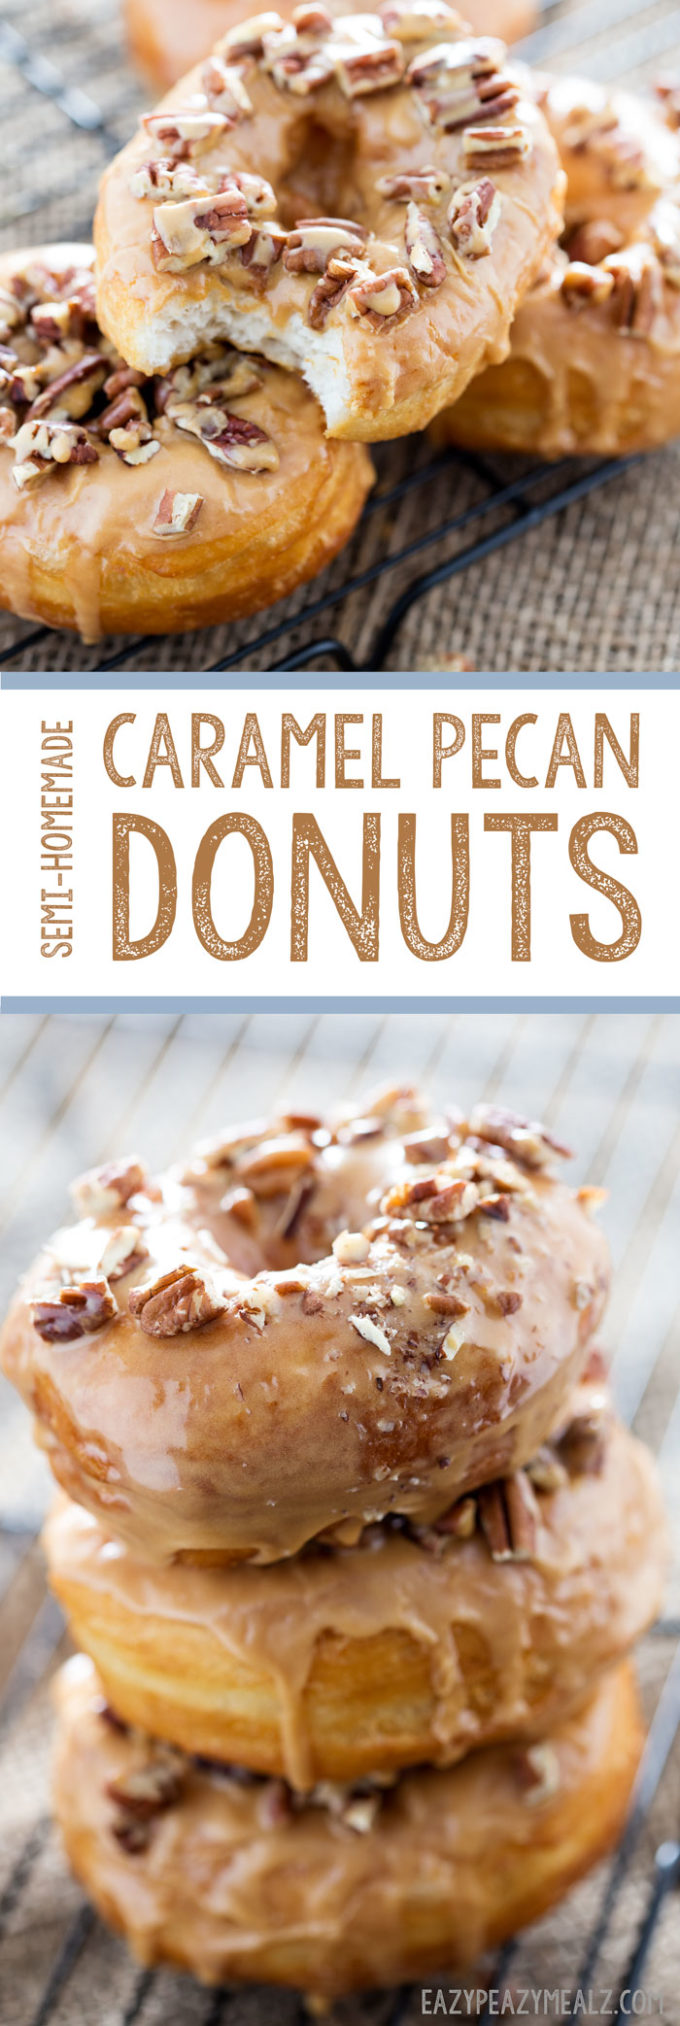 Semi-homemade donuts that are so easy to make, and taste awesome.